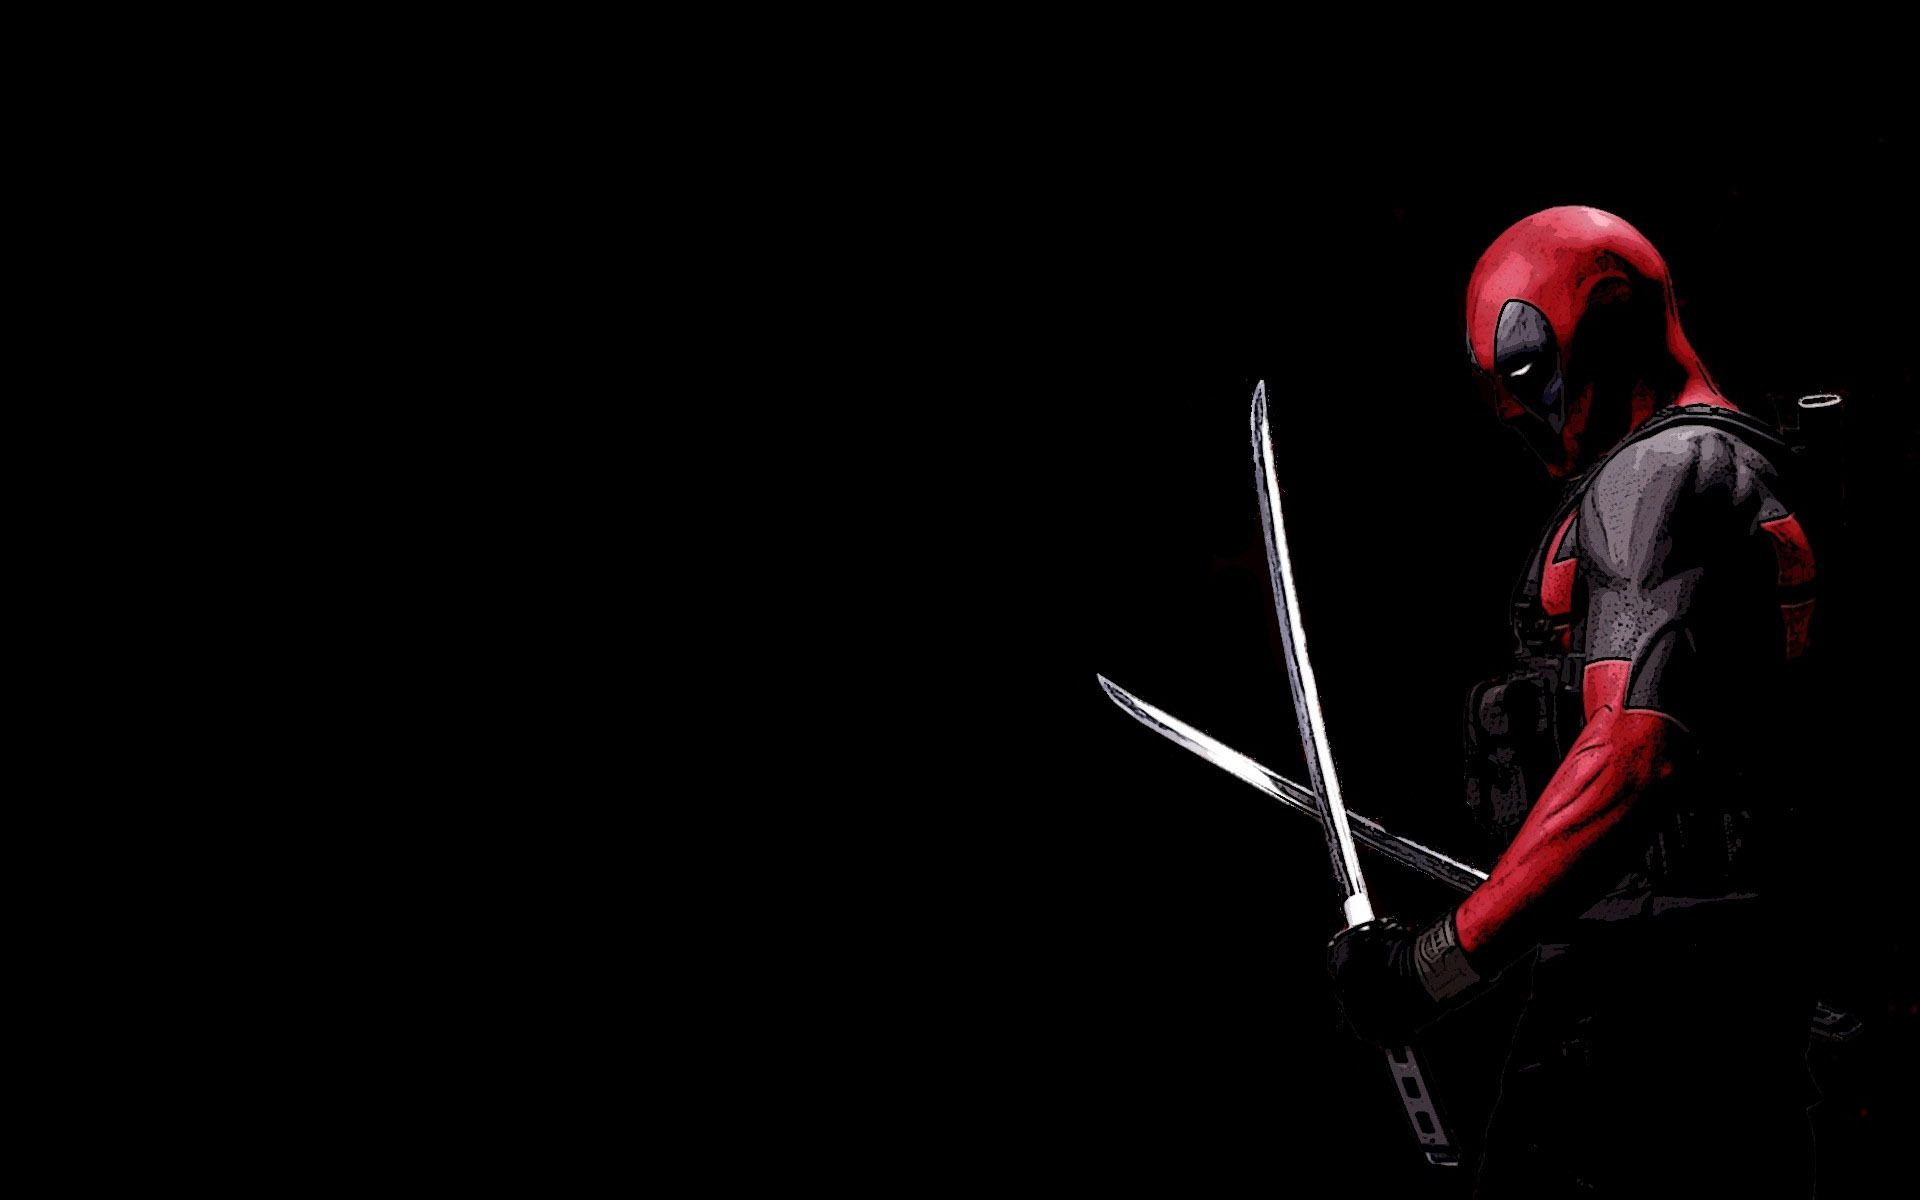 Deadpool Wallpapers   Full HD wallpaper search 1920x1200